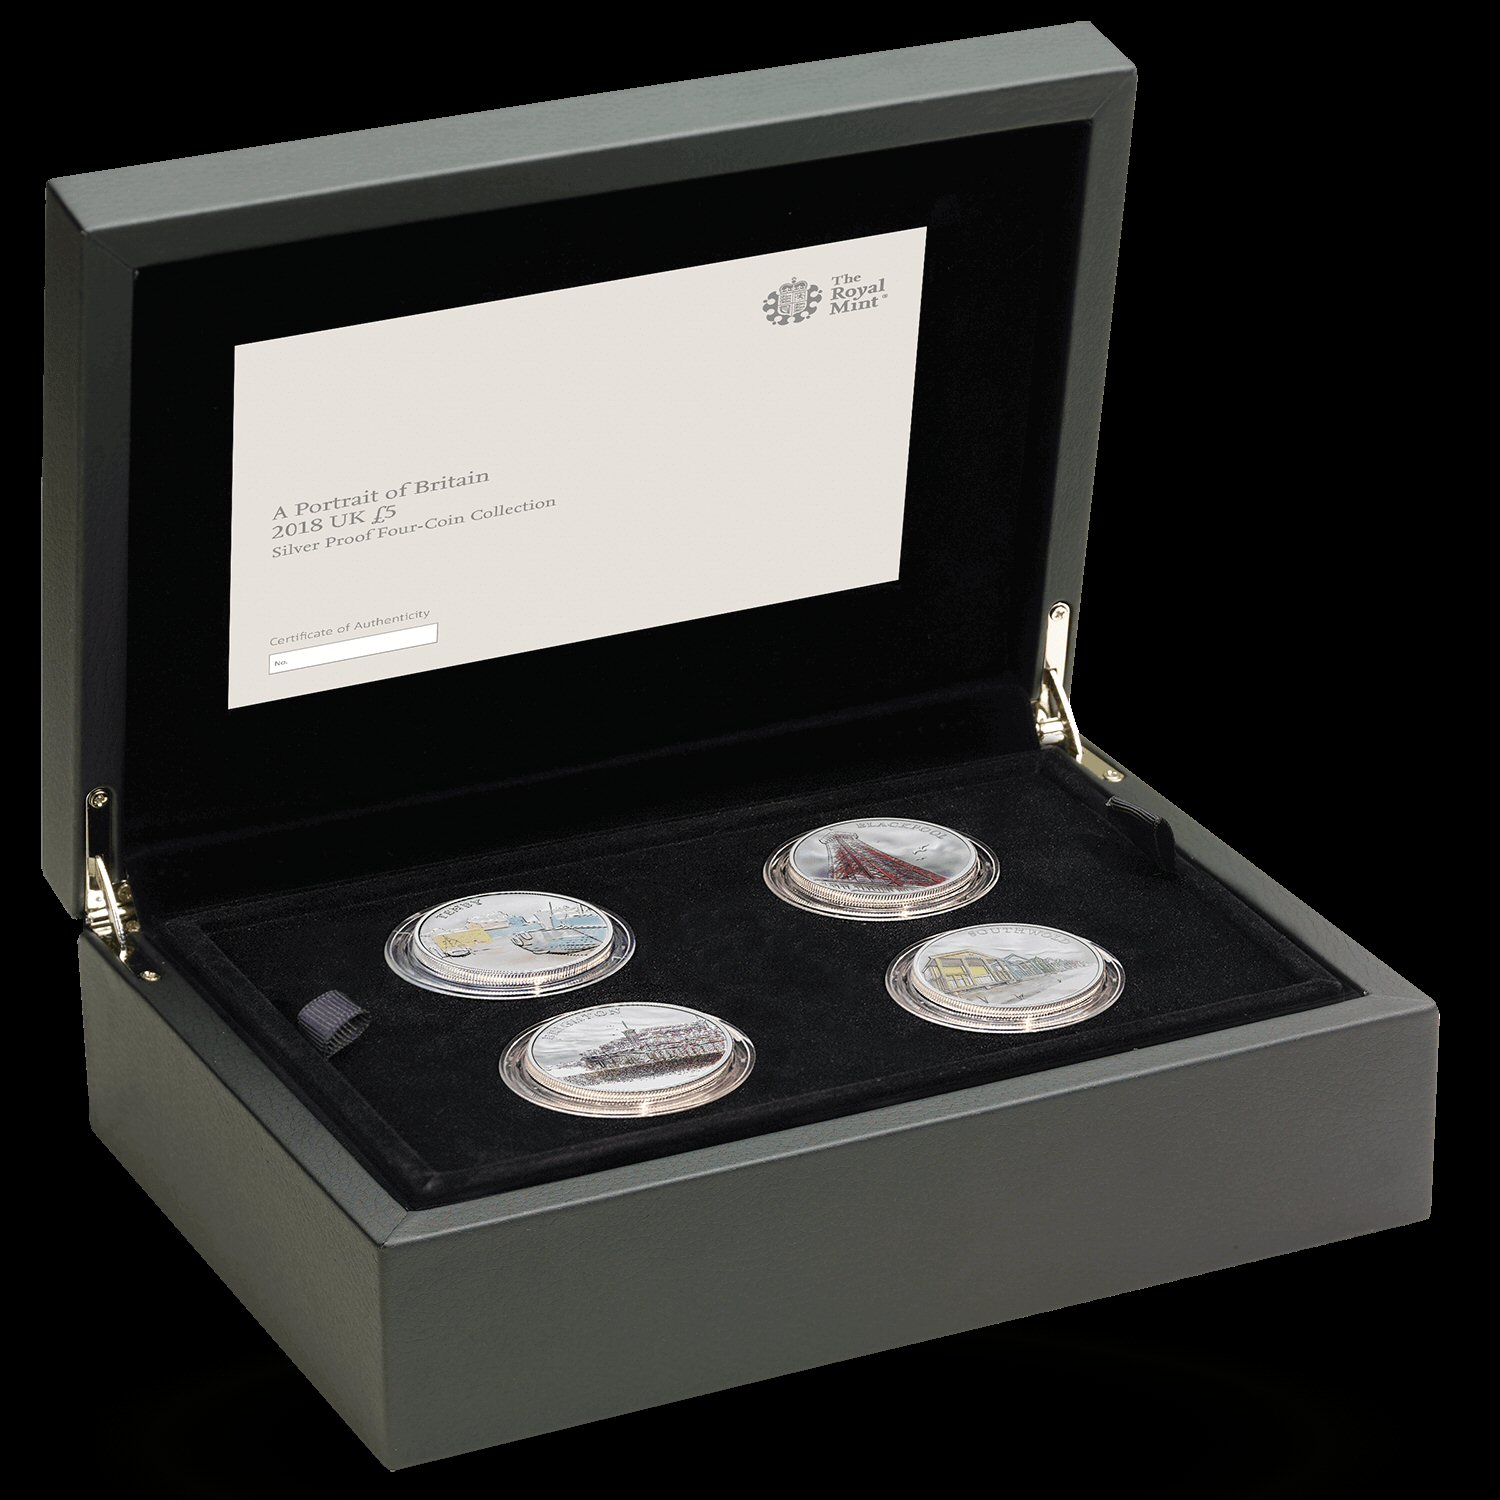 Portrait of Britain 2018 UK £5 Silver Proof Four-Coin Collection